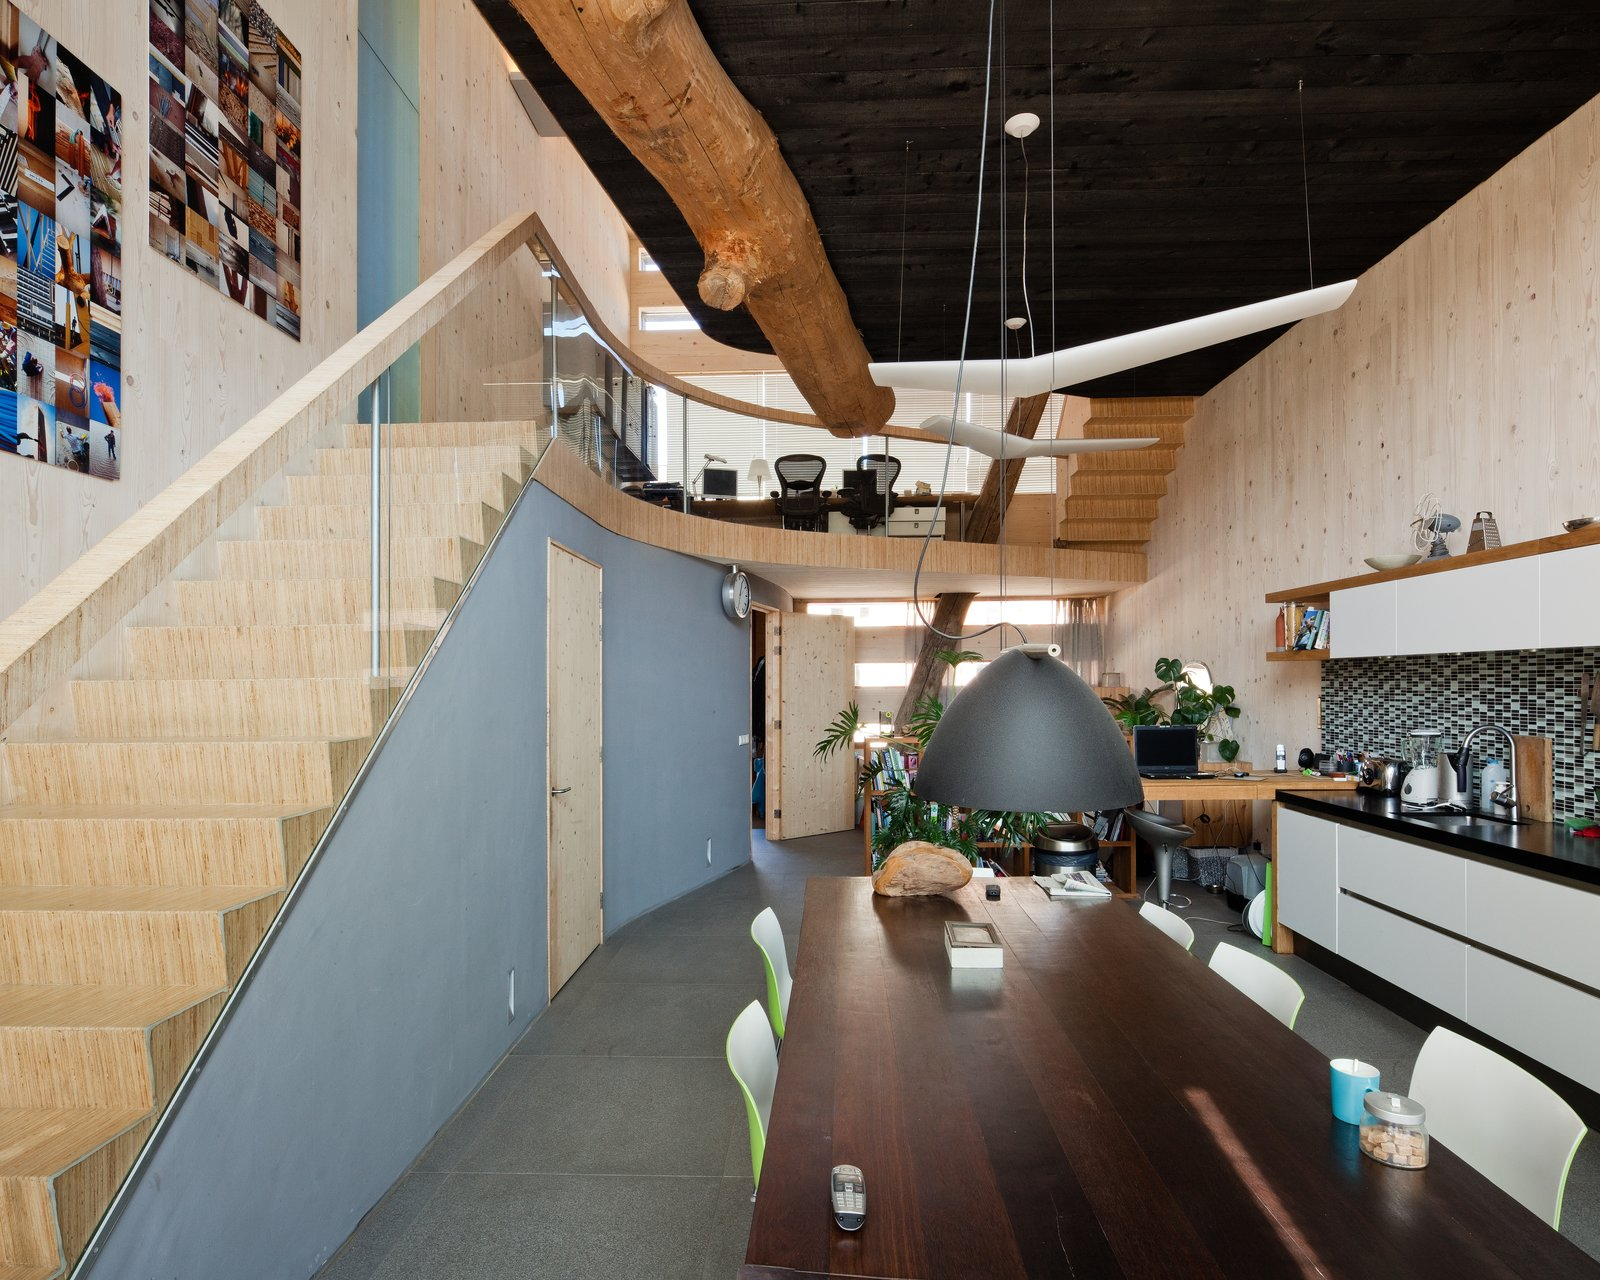 The dining and kitchen area are located on the first floor. The ceramic tile floor is from a local source, which is Cradle to Cradle certified. A Passive House in the Netherlands Embodies 5 Tips to Consider When Planning Your Own - Photo 4 of 5